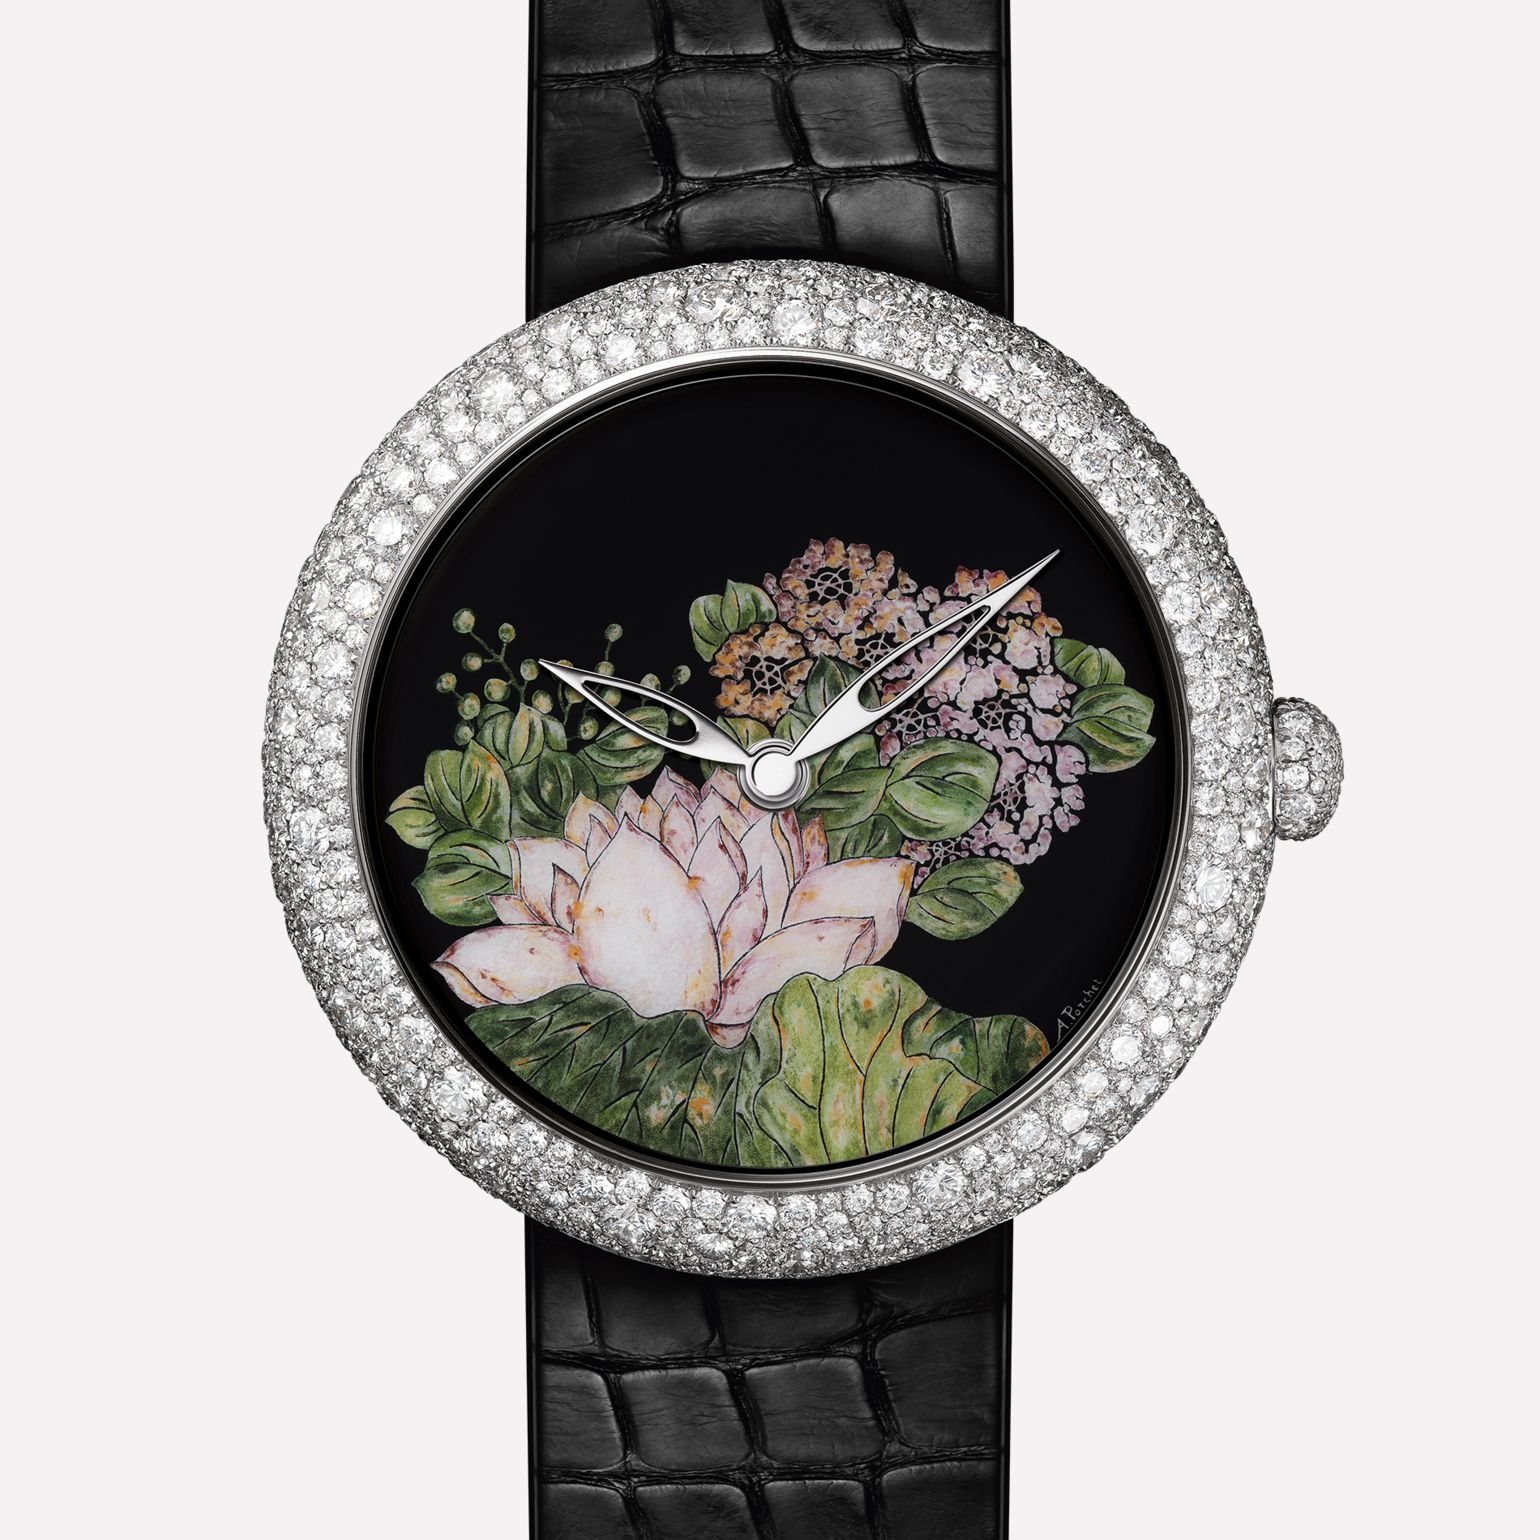 Mademoiselle Privé Watch Rosée matinale : Coromandel created using the Grand Feu enamel miniature technique